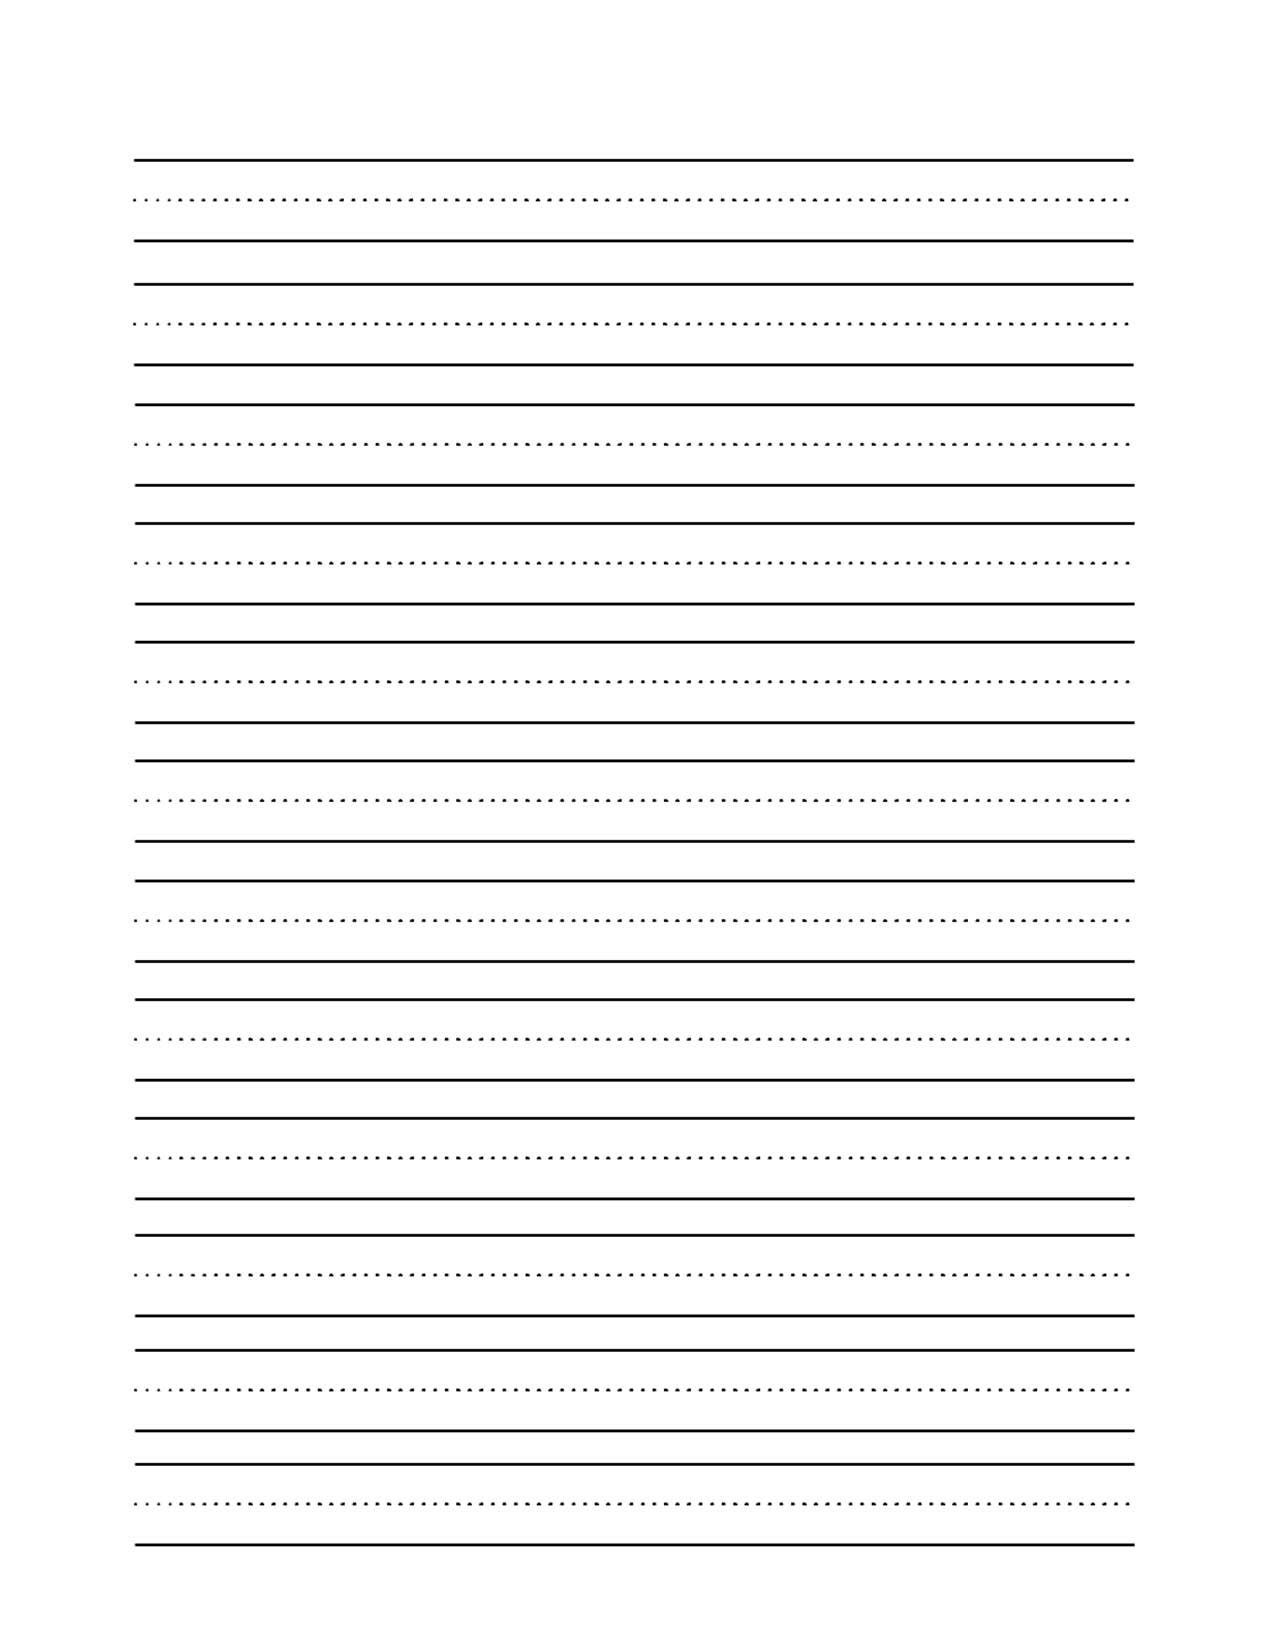 lined paper for handwriting practice Free to print this is lined paper for children to practice their handwriting it works for both print manuscript and cursive script handwriting styles there are thick lines at the top and bottom, with a dashed line in the center.